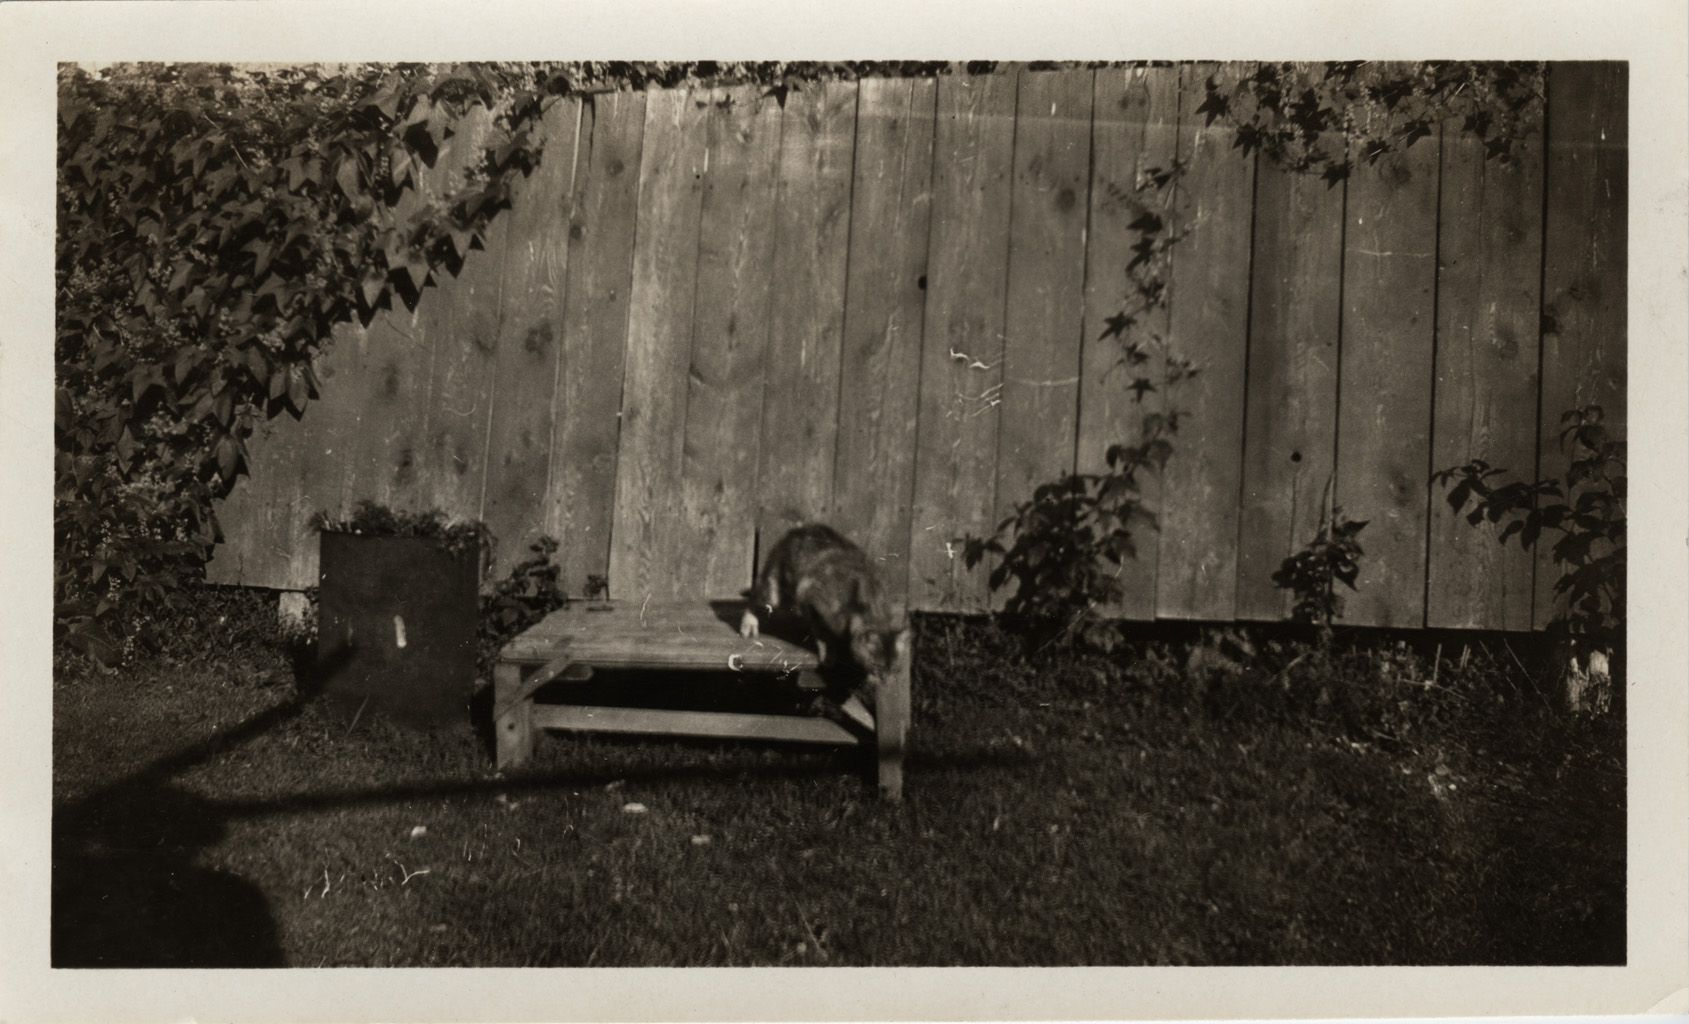 Photograph of cat jumping down from wooden platform. Photographer unknown, Archives at the Huron County Museum 2004.0038.042.